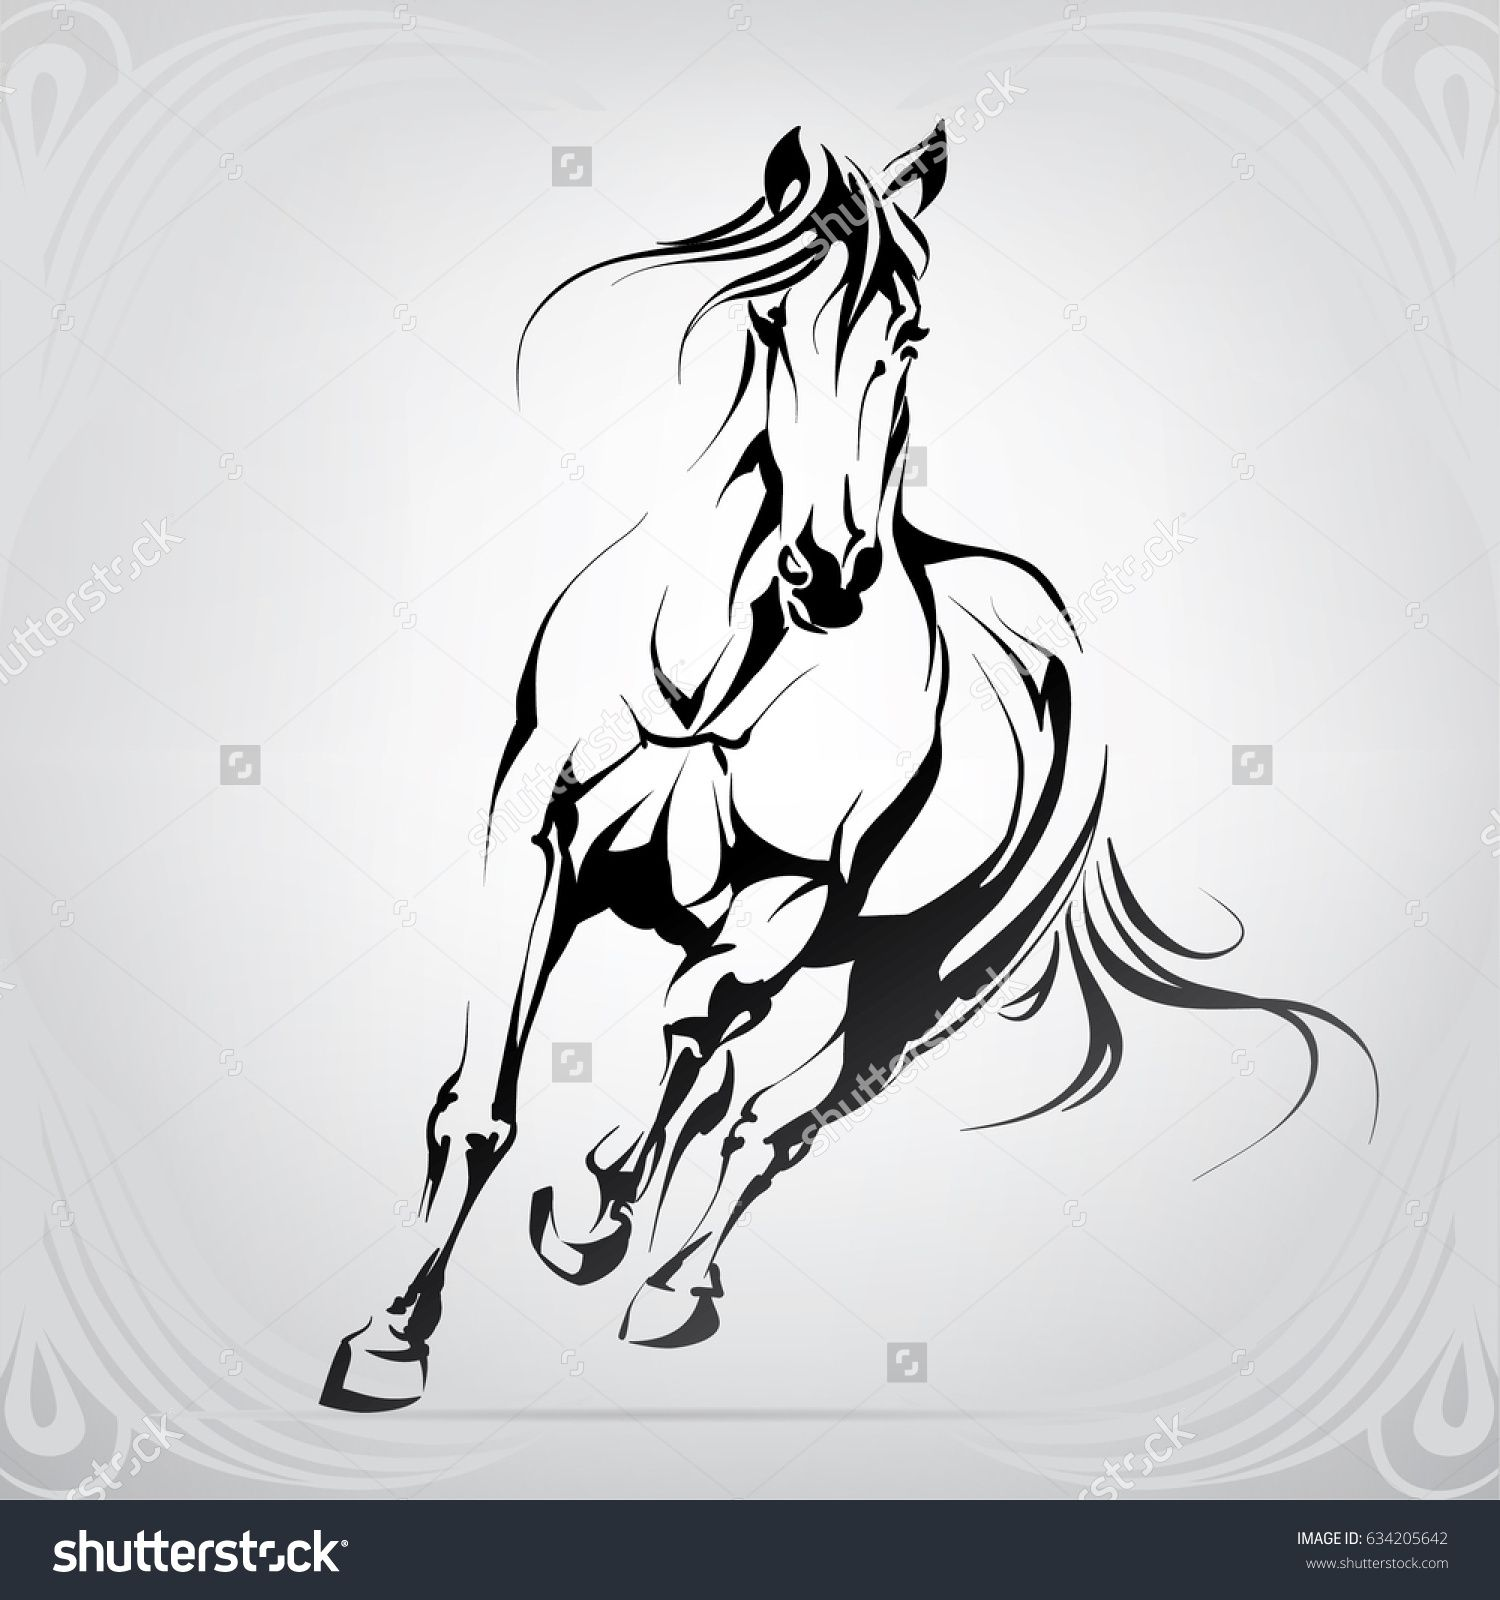 Vector Silhouette Of A Running Horse Horse Silhouette Running